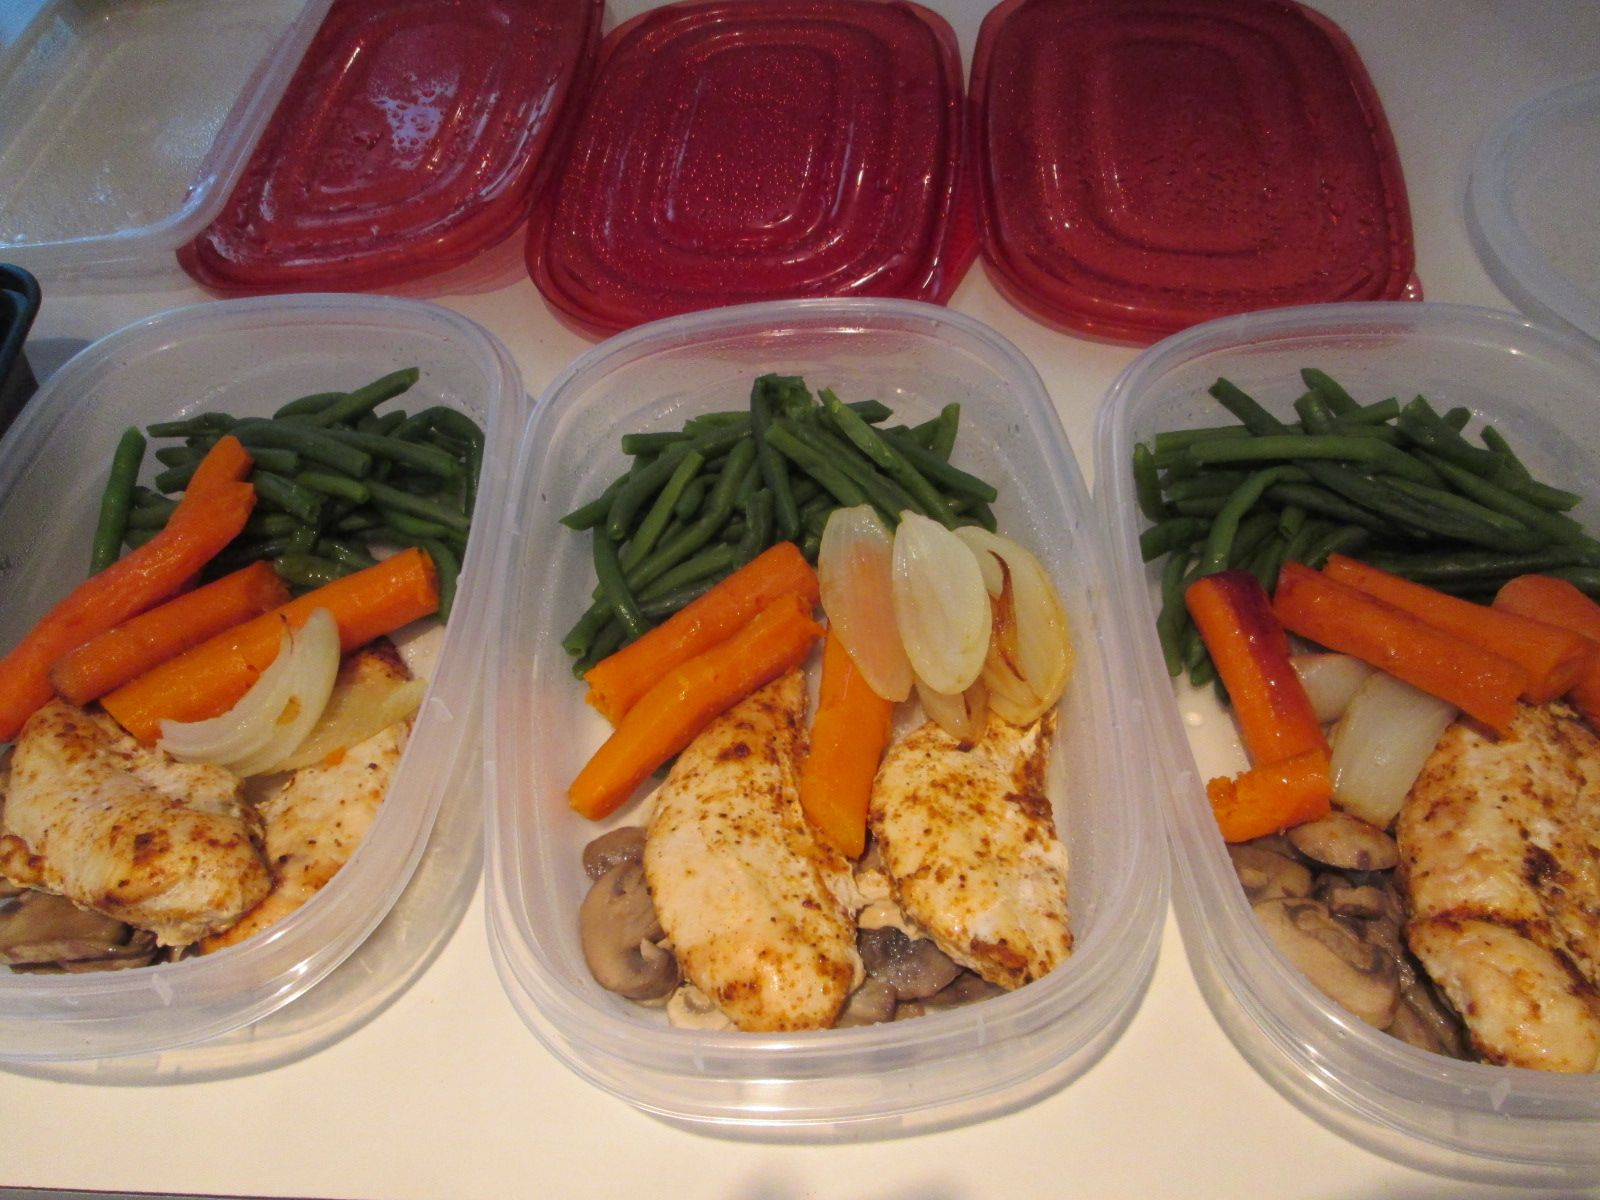 Diy frozen lean cuisine meals for mom easy recipes for Are lean cuisine meals healthy